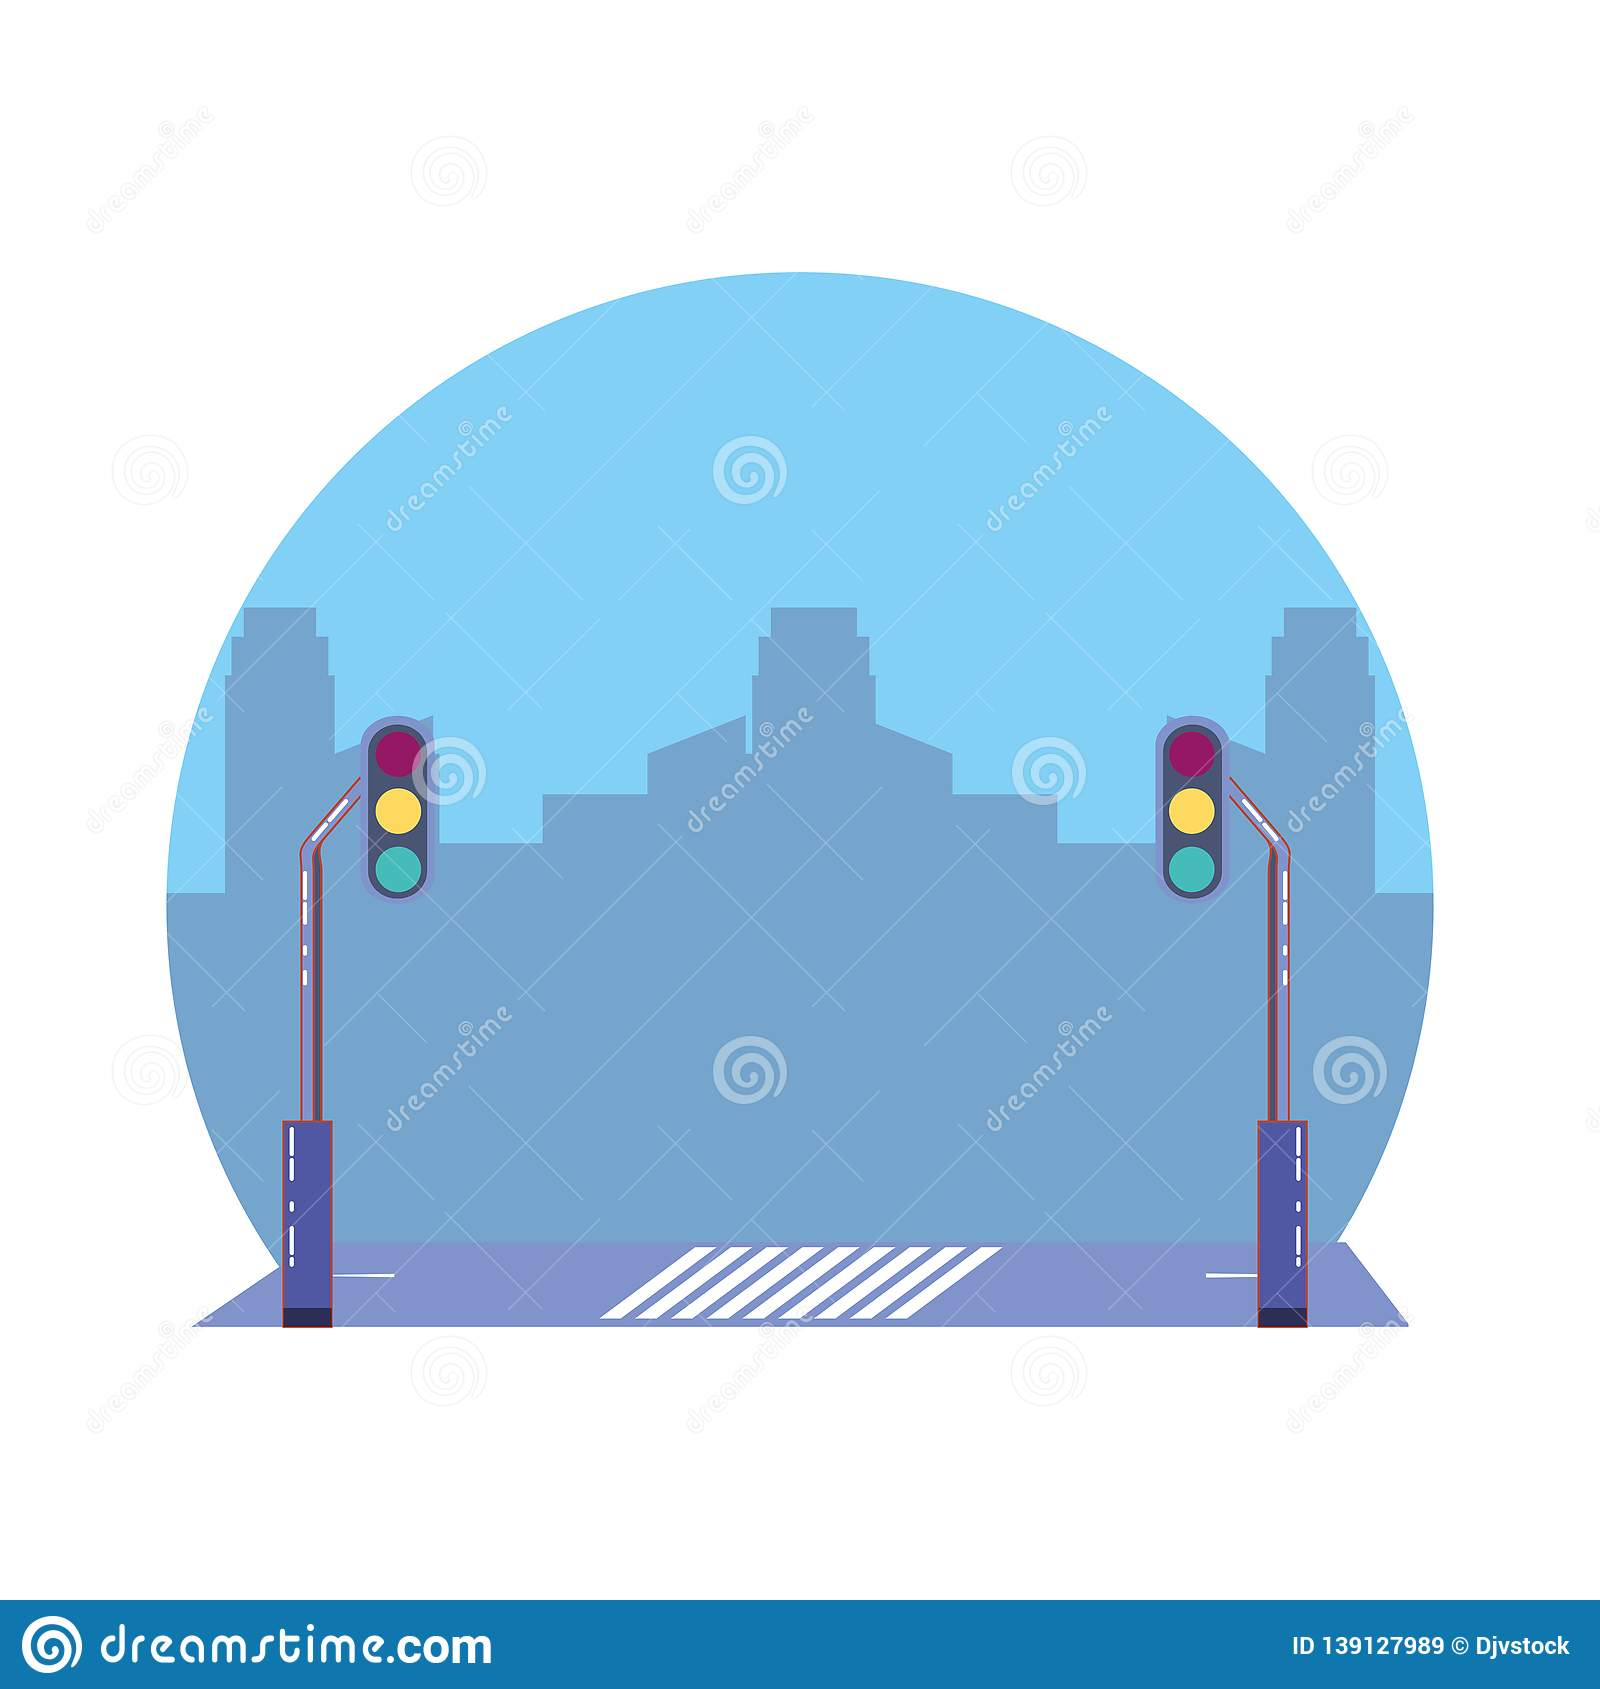 hight resolution of city road with traffic light scene icon